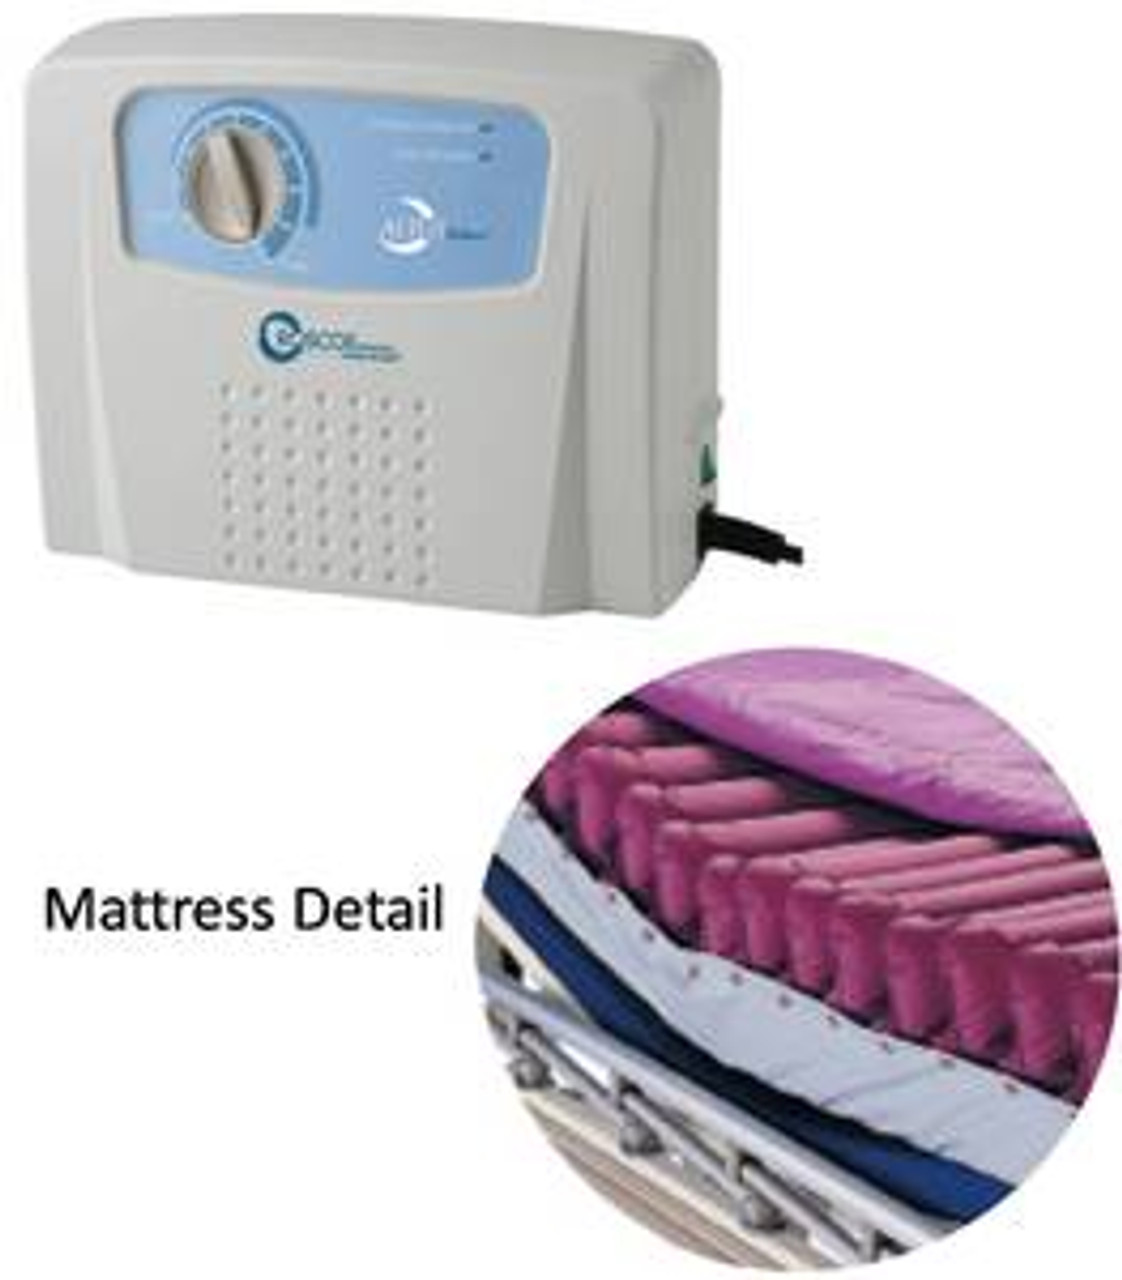 Roscoe Low Air Loss Mattress System with Alternating Pressure Pump